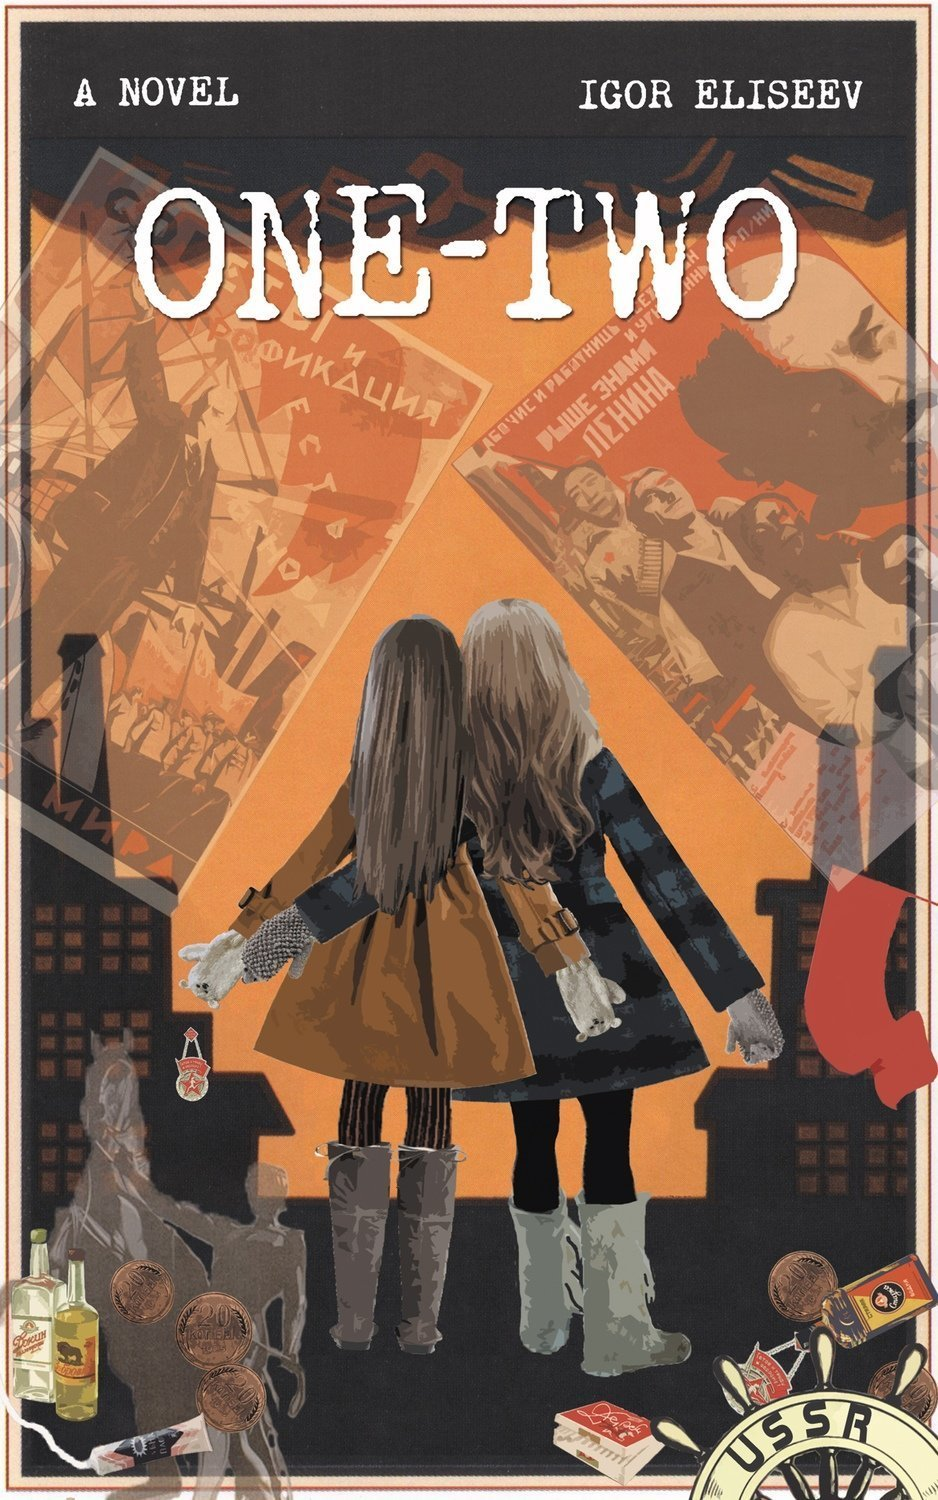 One-Two - Multicultural Fiction